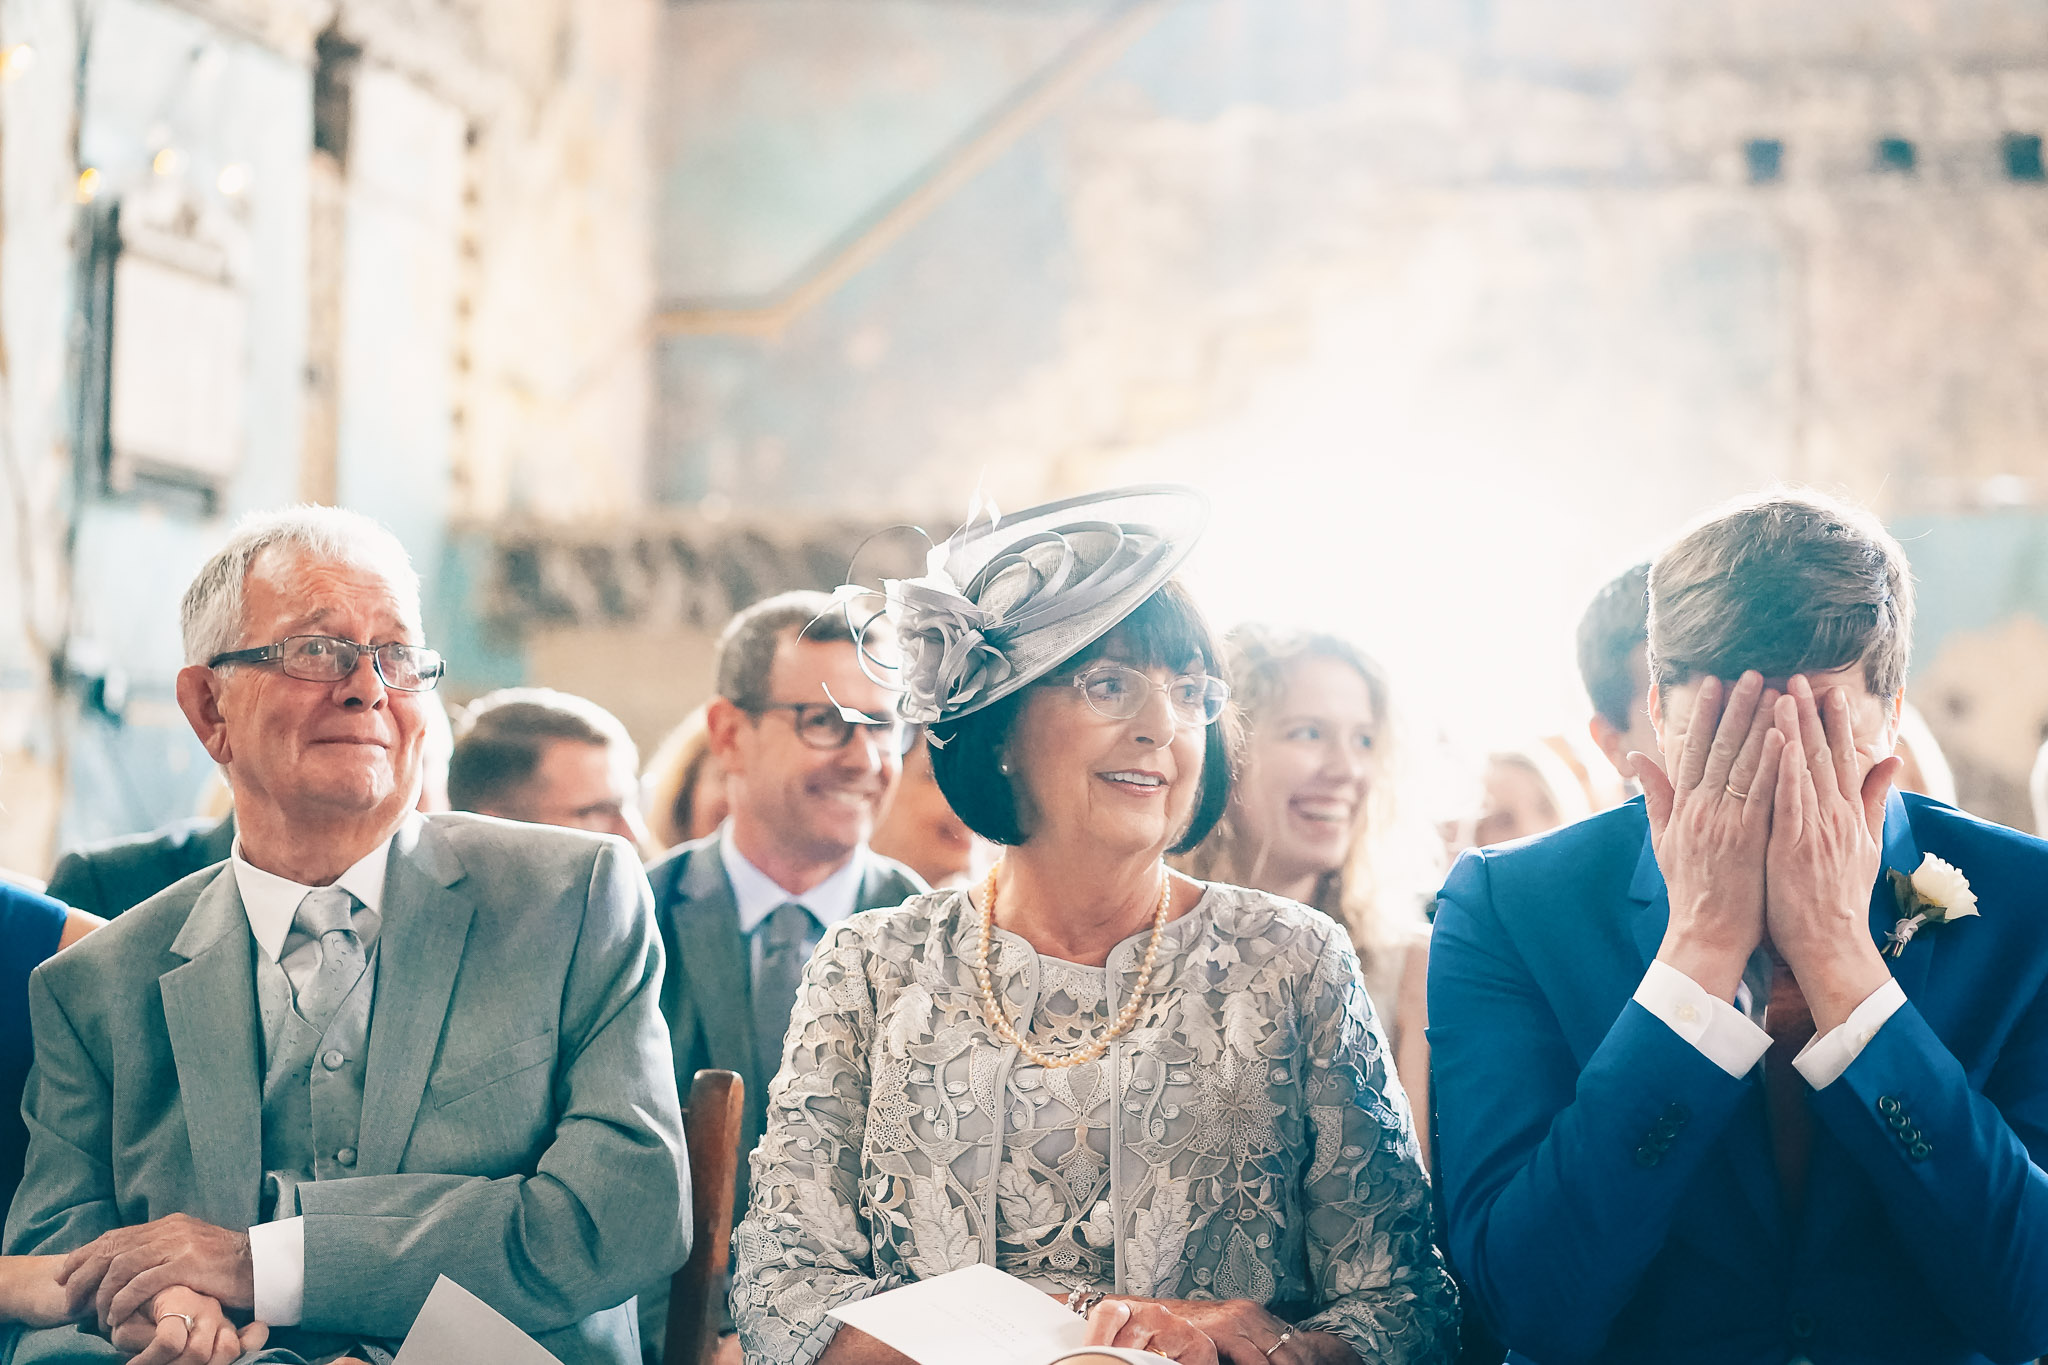 Emotional moment for ceremony guests - photo by Andrew Billington Photography